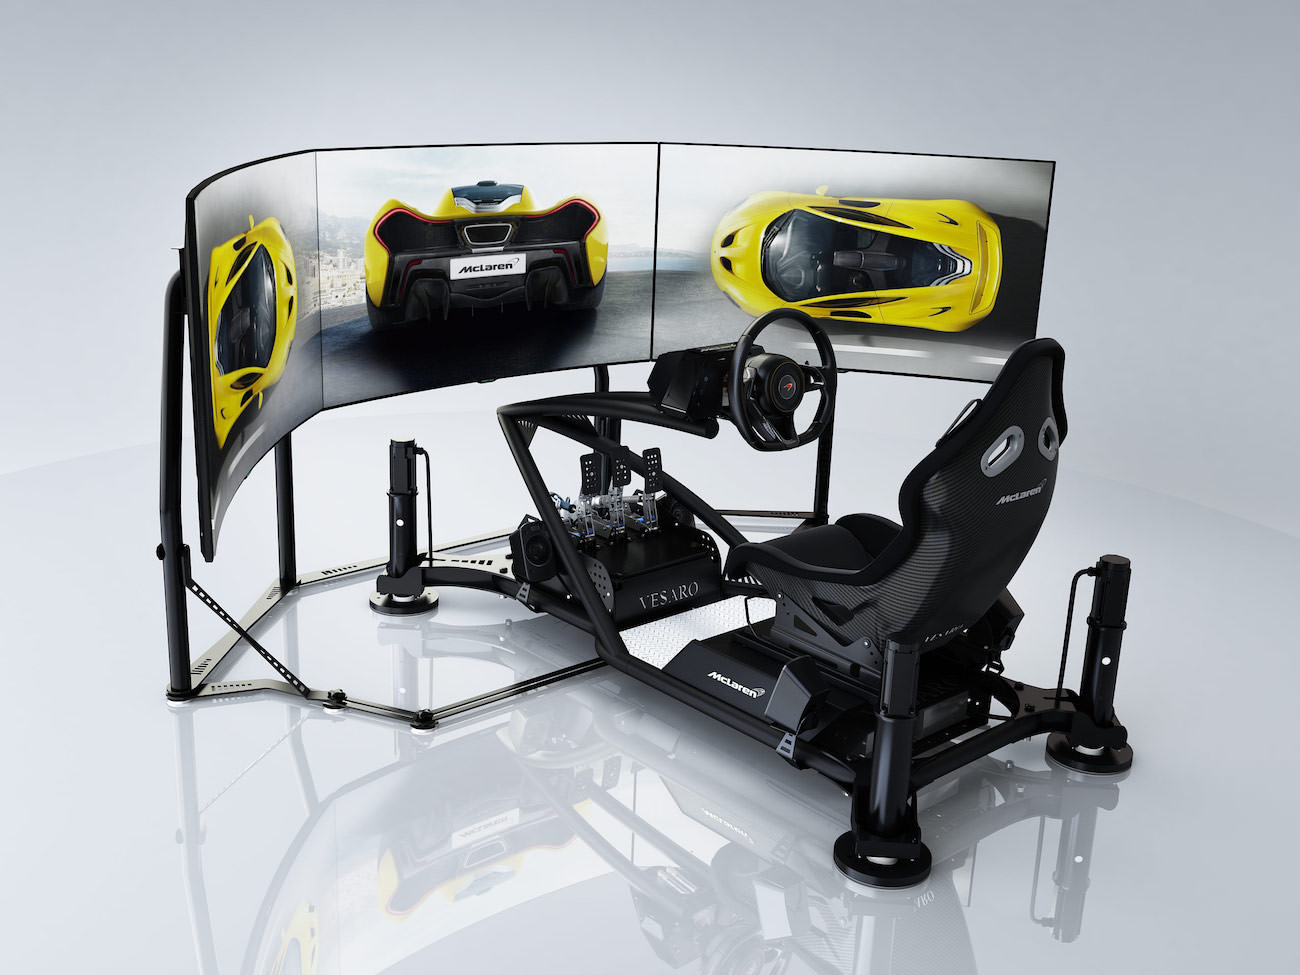 mclaren ultimate series simulator une supercar dans votre maison. Black Bedroom Furniture Sets. Home Design Ideas